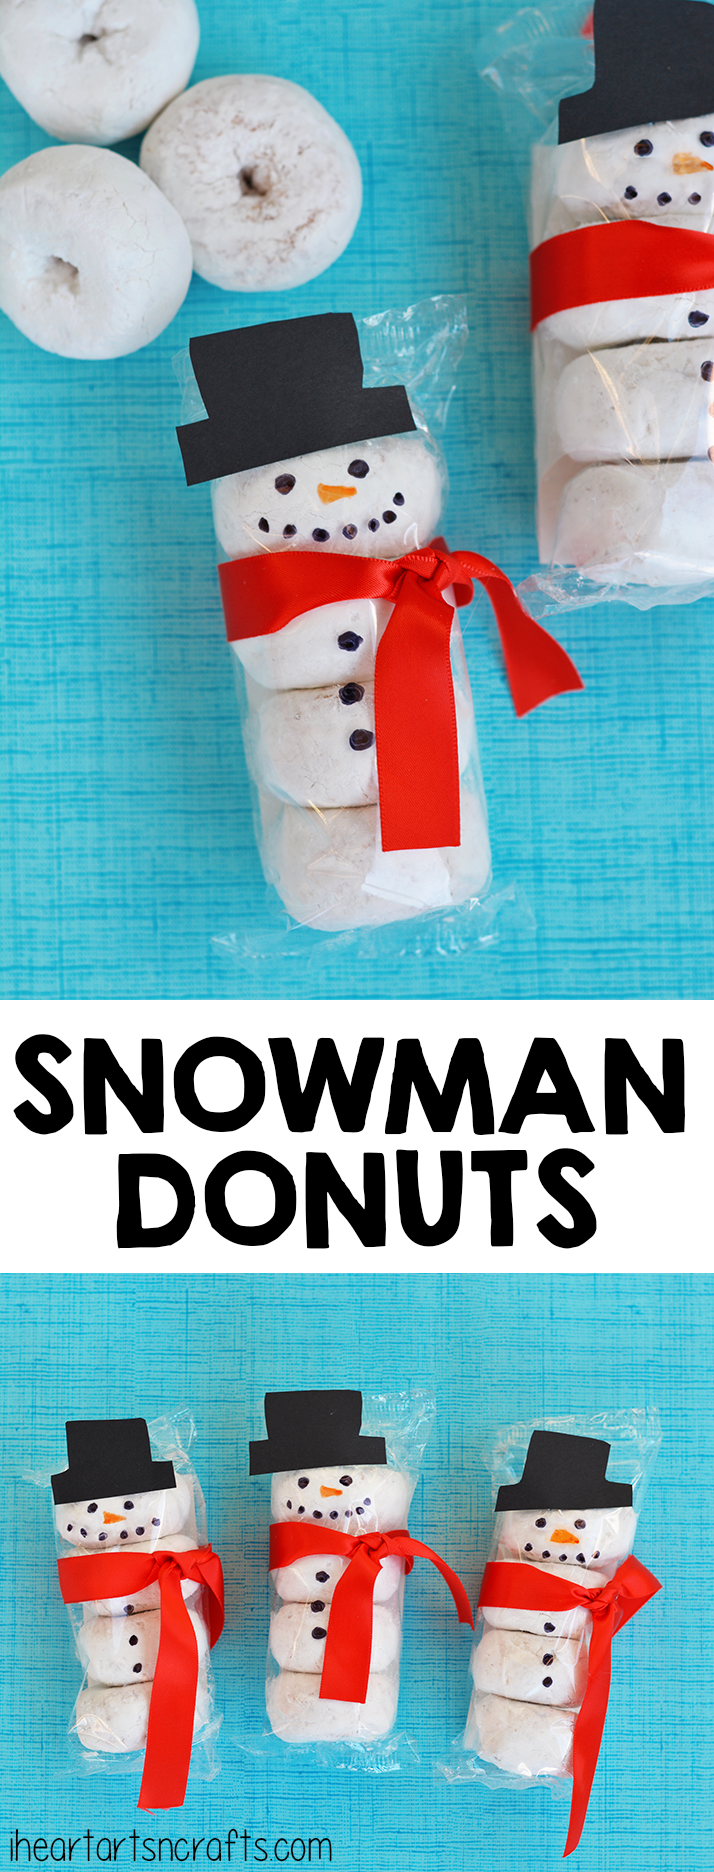 Snowman Donuts | Christmas Crafts for Kids